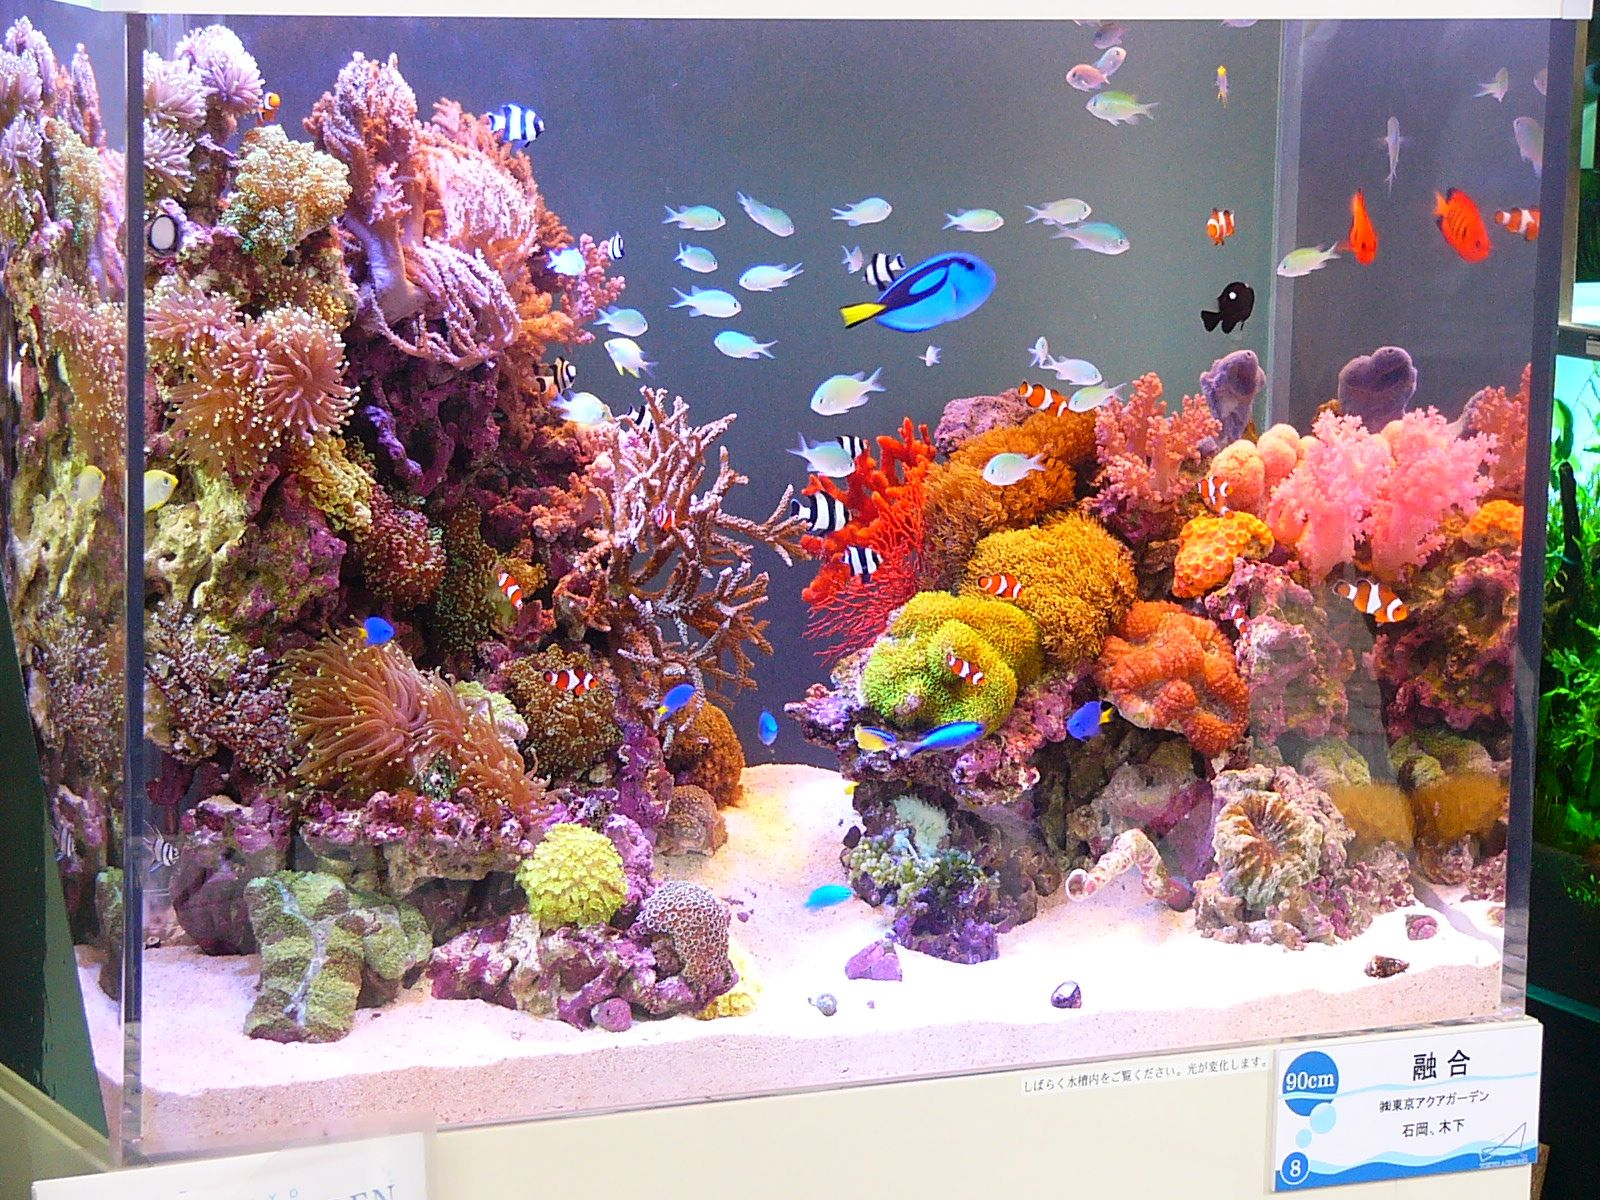 aquarium artificial tank images on unexpected decorations of decor best reef coral decoration pinterest